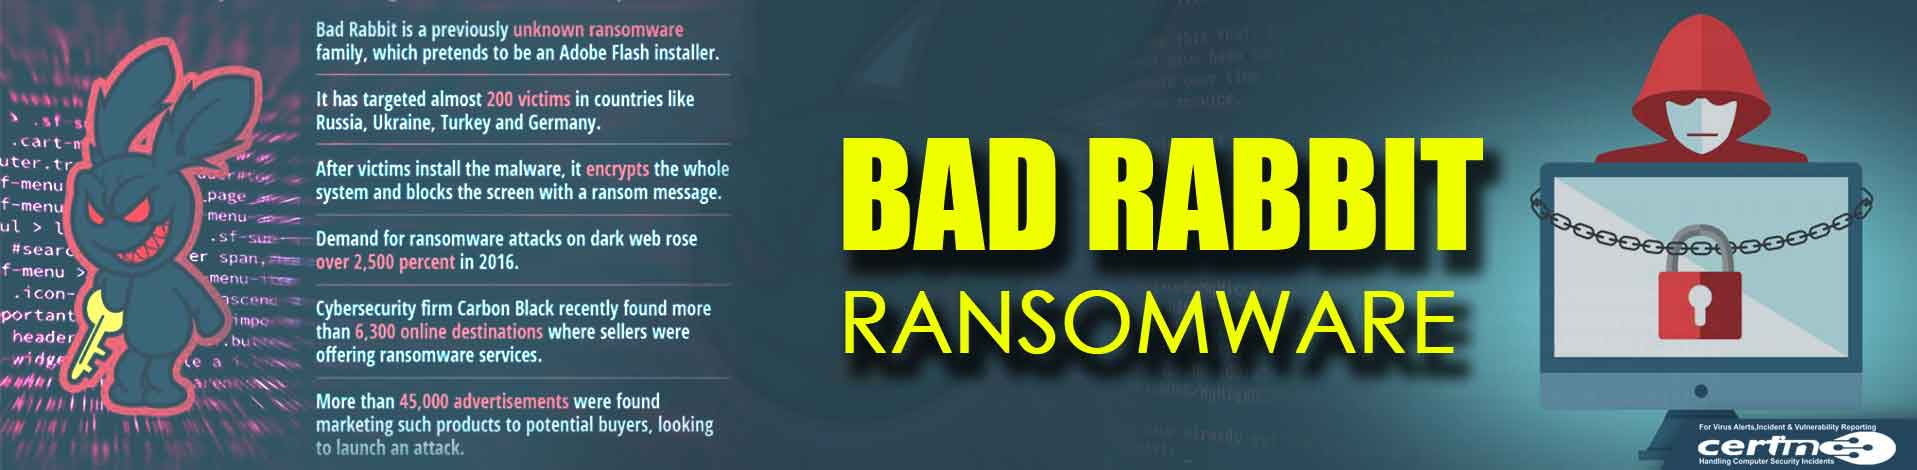 Bad-rabbit-ransomware5819